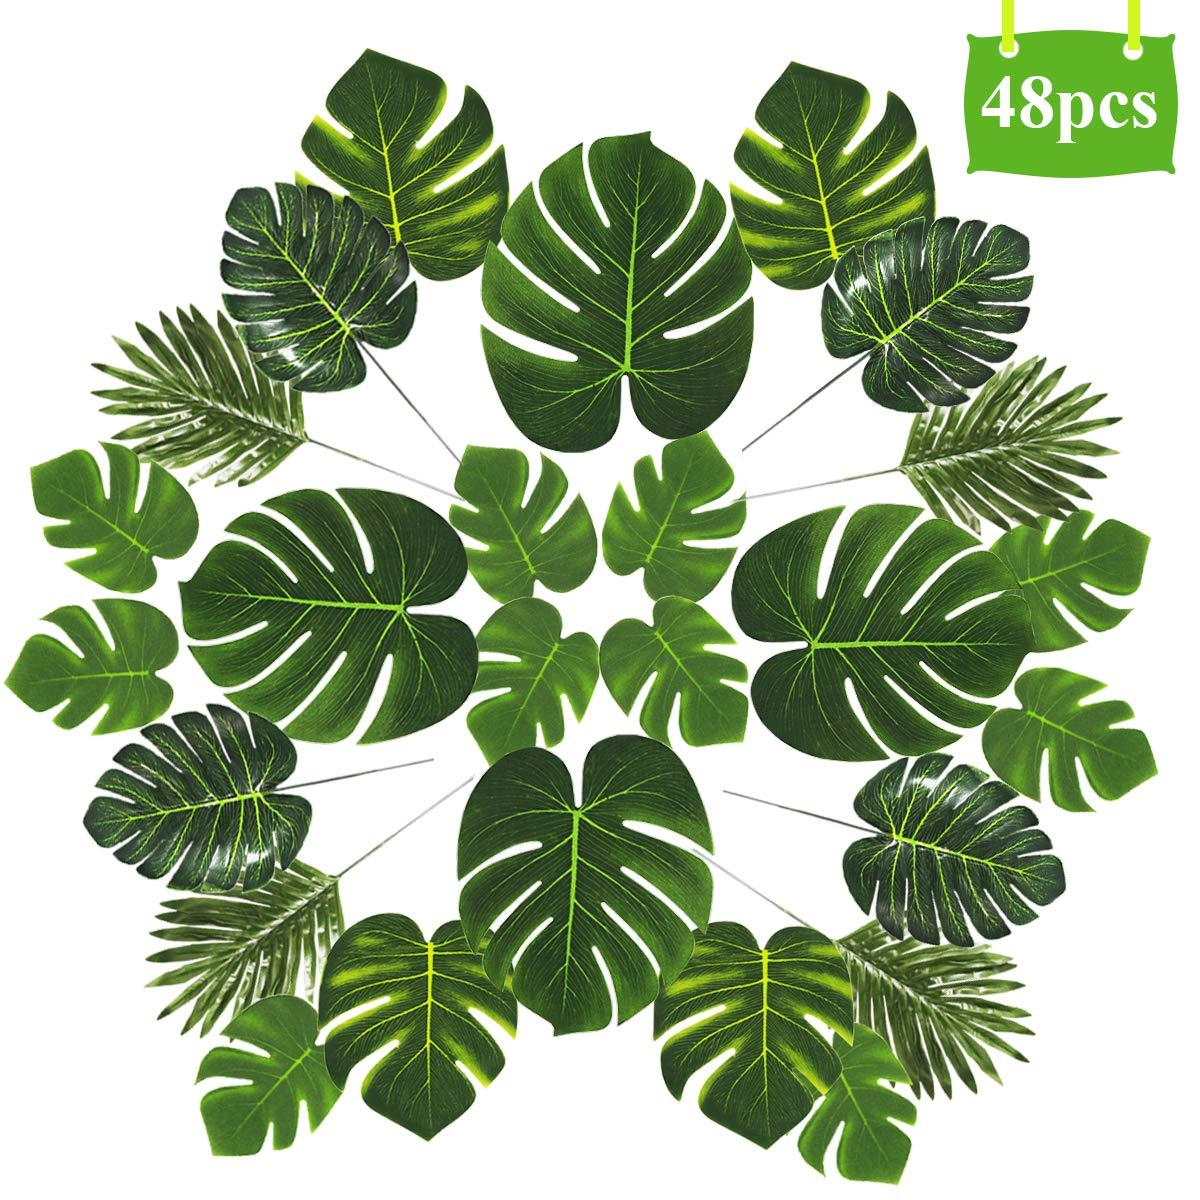 48pcs Artificial Palm Leaves Decorations – 5 Kinds of Tropical Palm Tree Leaves | Faux Plam Leaves with Stem, Monstera Leaves Table Decor for Safari Jungle Theme Party Hawaiian Luau Aloha Beach Party